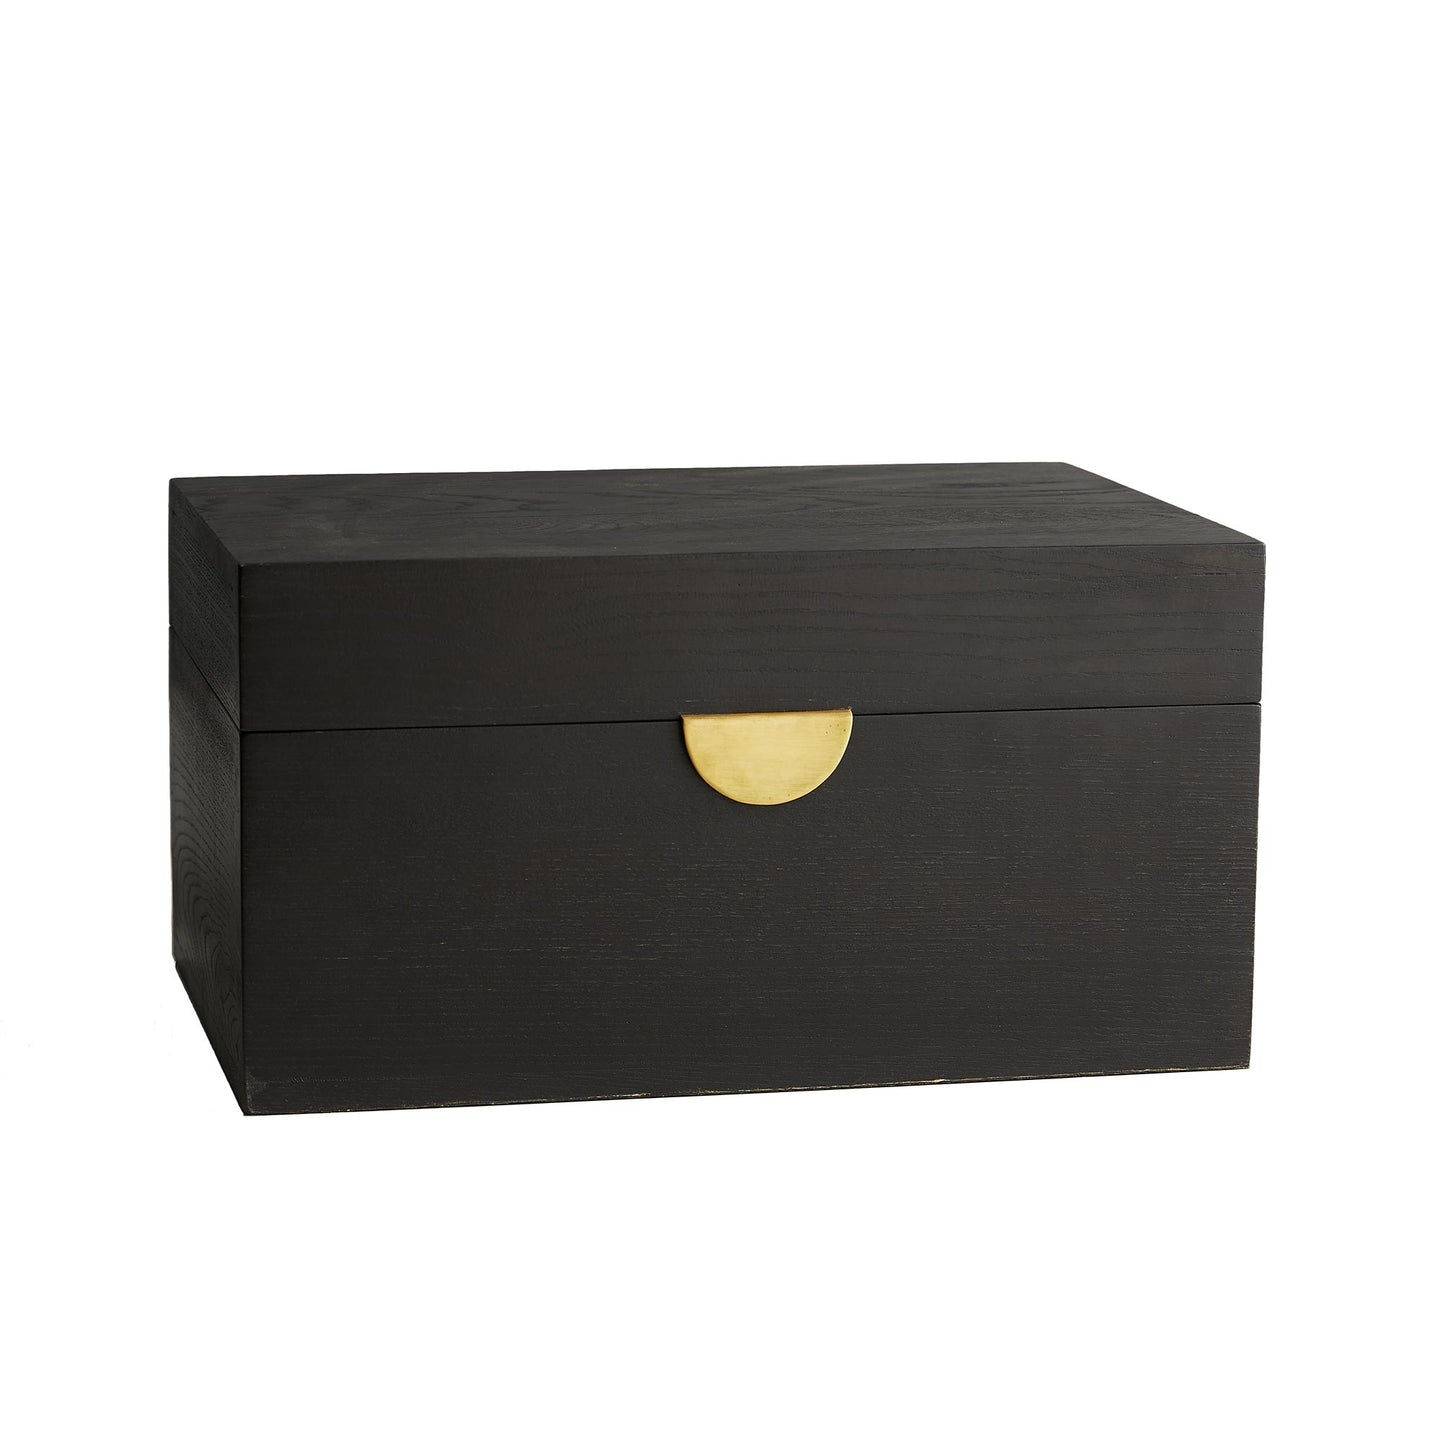 Margeaux Large Box